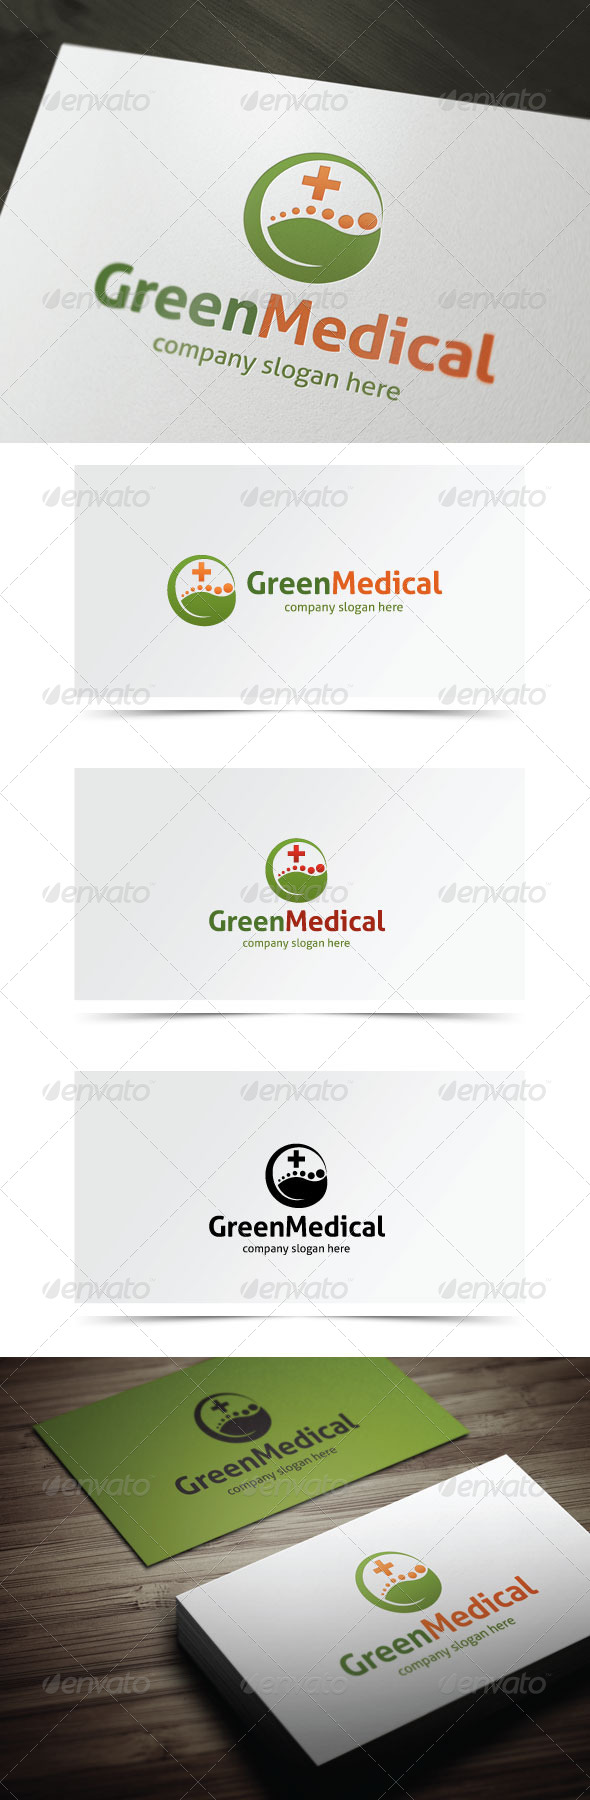 GraphicRiver Green Medical 5980725